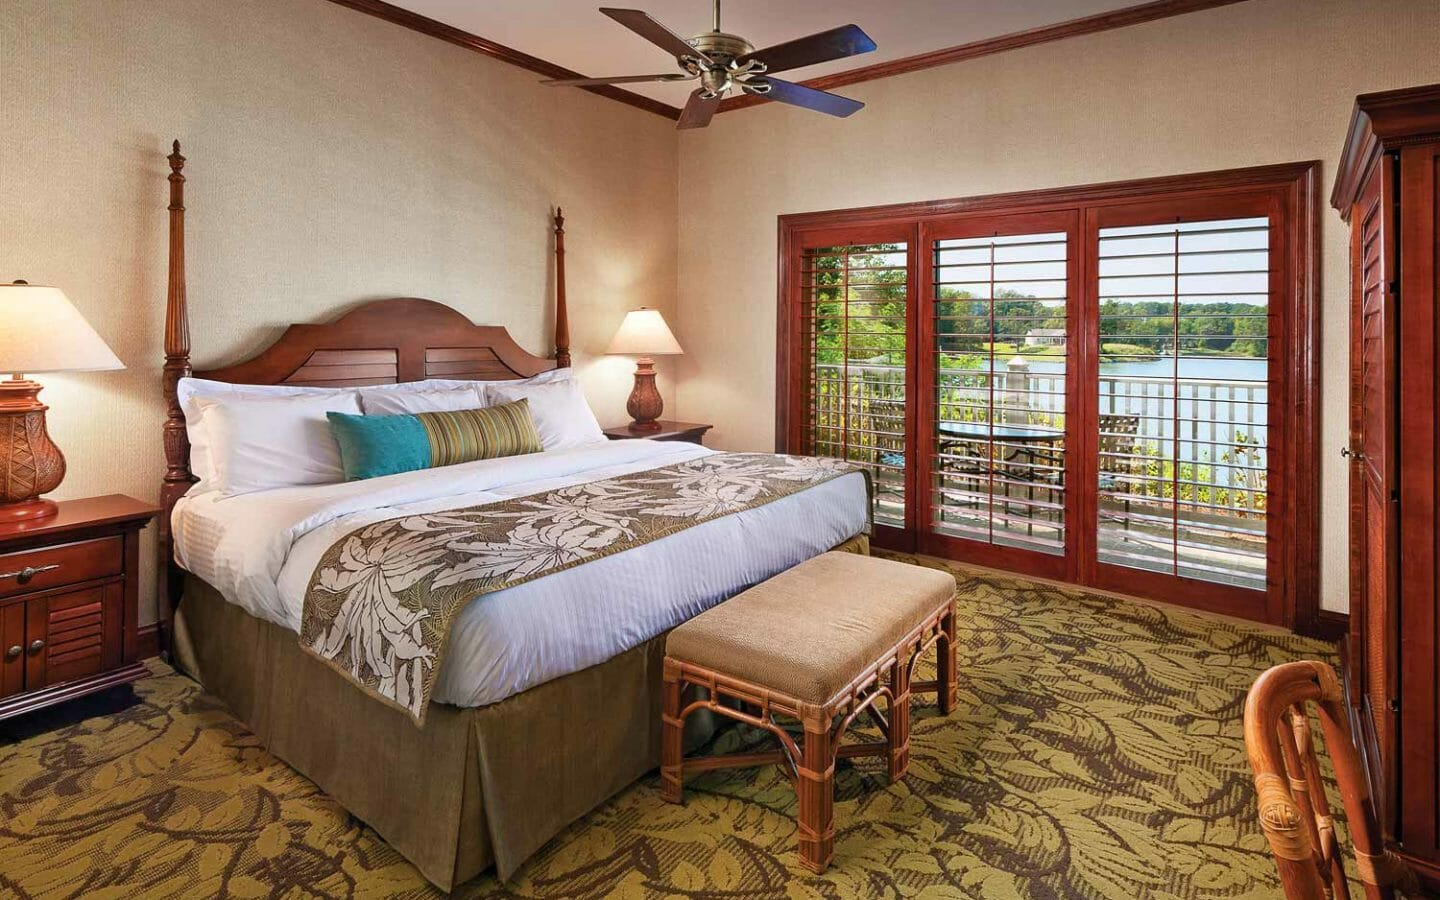 Tides Inn Premier Suite | Resorts in Chesapeake Bay